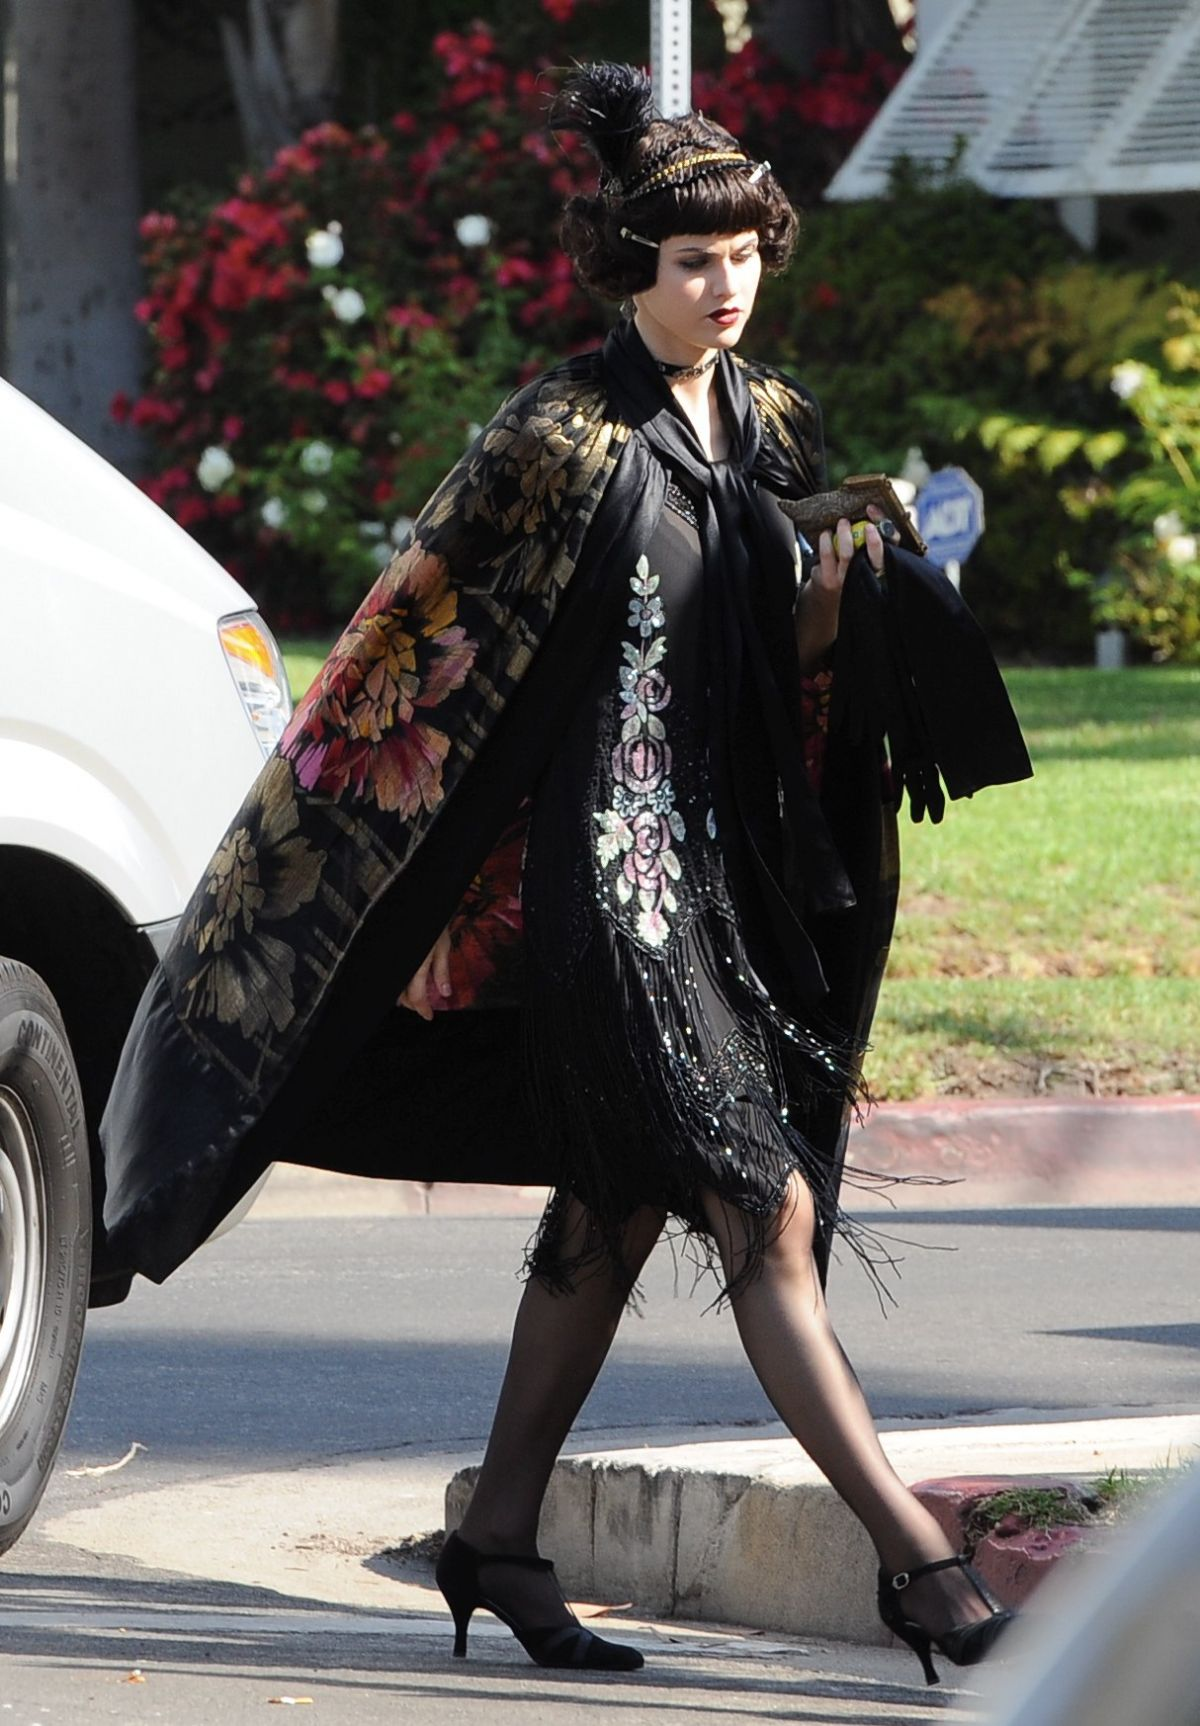 alexandra-daddario-on-the-set-of-american-horror-story-in-los-angeles-10-23-2015_2